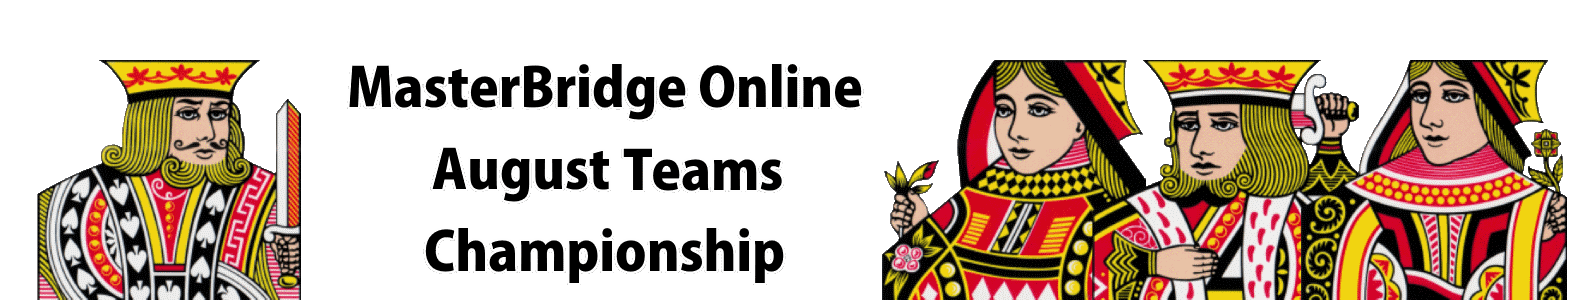 MasterBridge Online August Teams Championship Results page